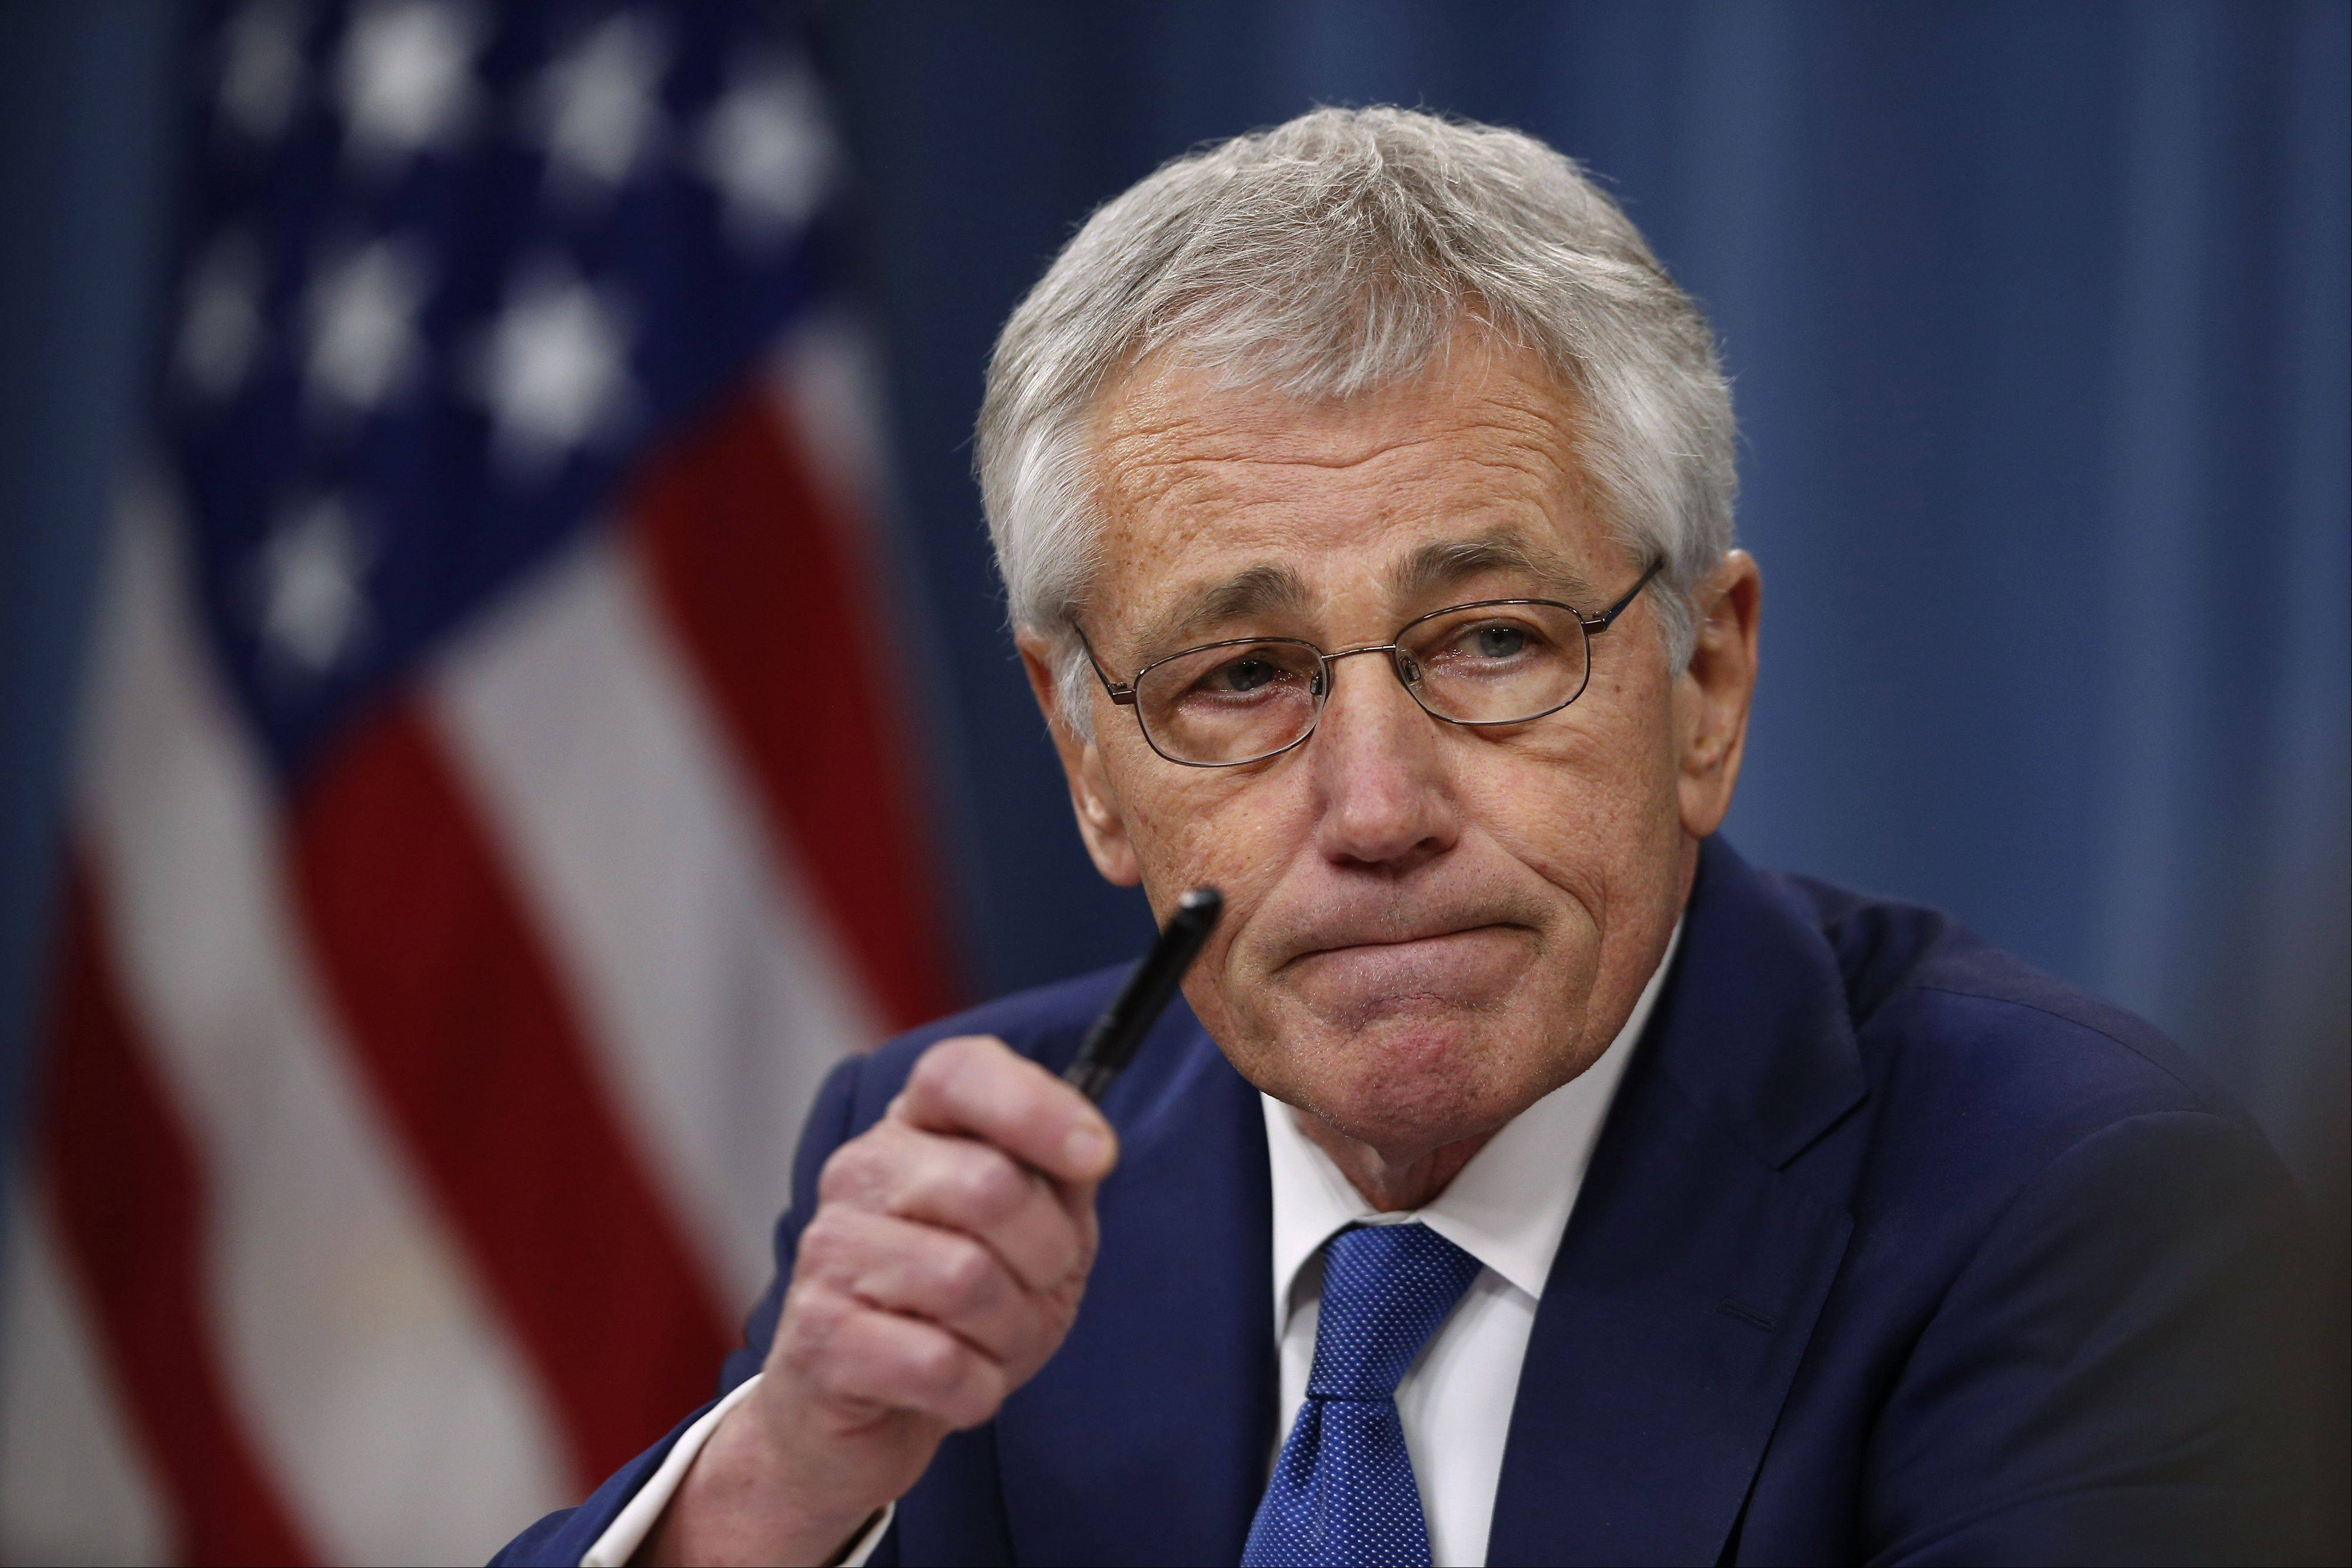 Defense Secretary Chuck Hagel ordered immediate actions Thursday to define the depth of trouble inside the nation�s nuclear force, which has been rocked by disclosures about security lapses, poor discipline, weak morale and other problems that raise questions about nuclear security.